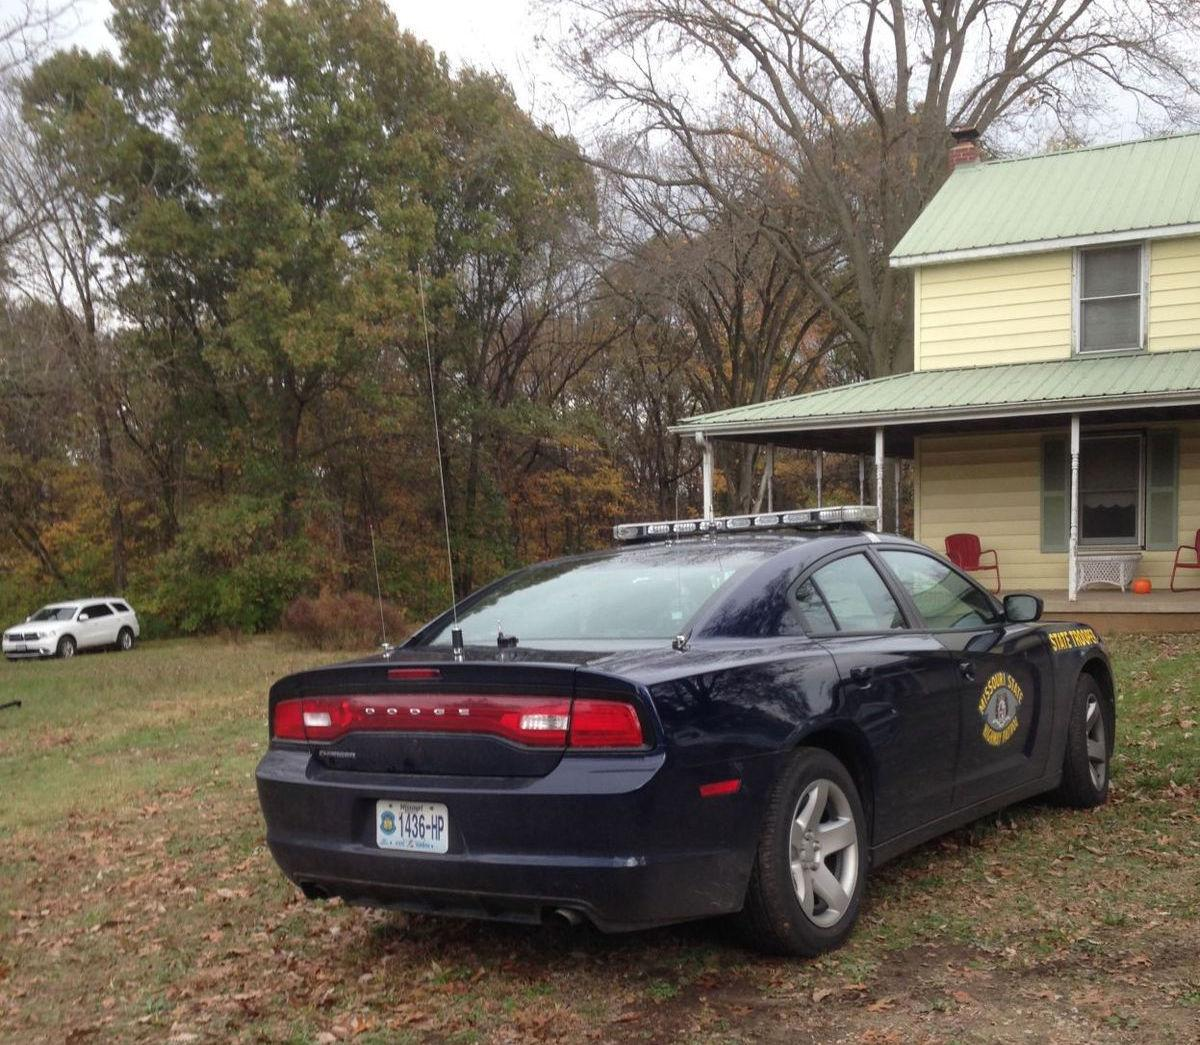 Body found in rear of vehicle